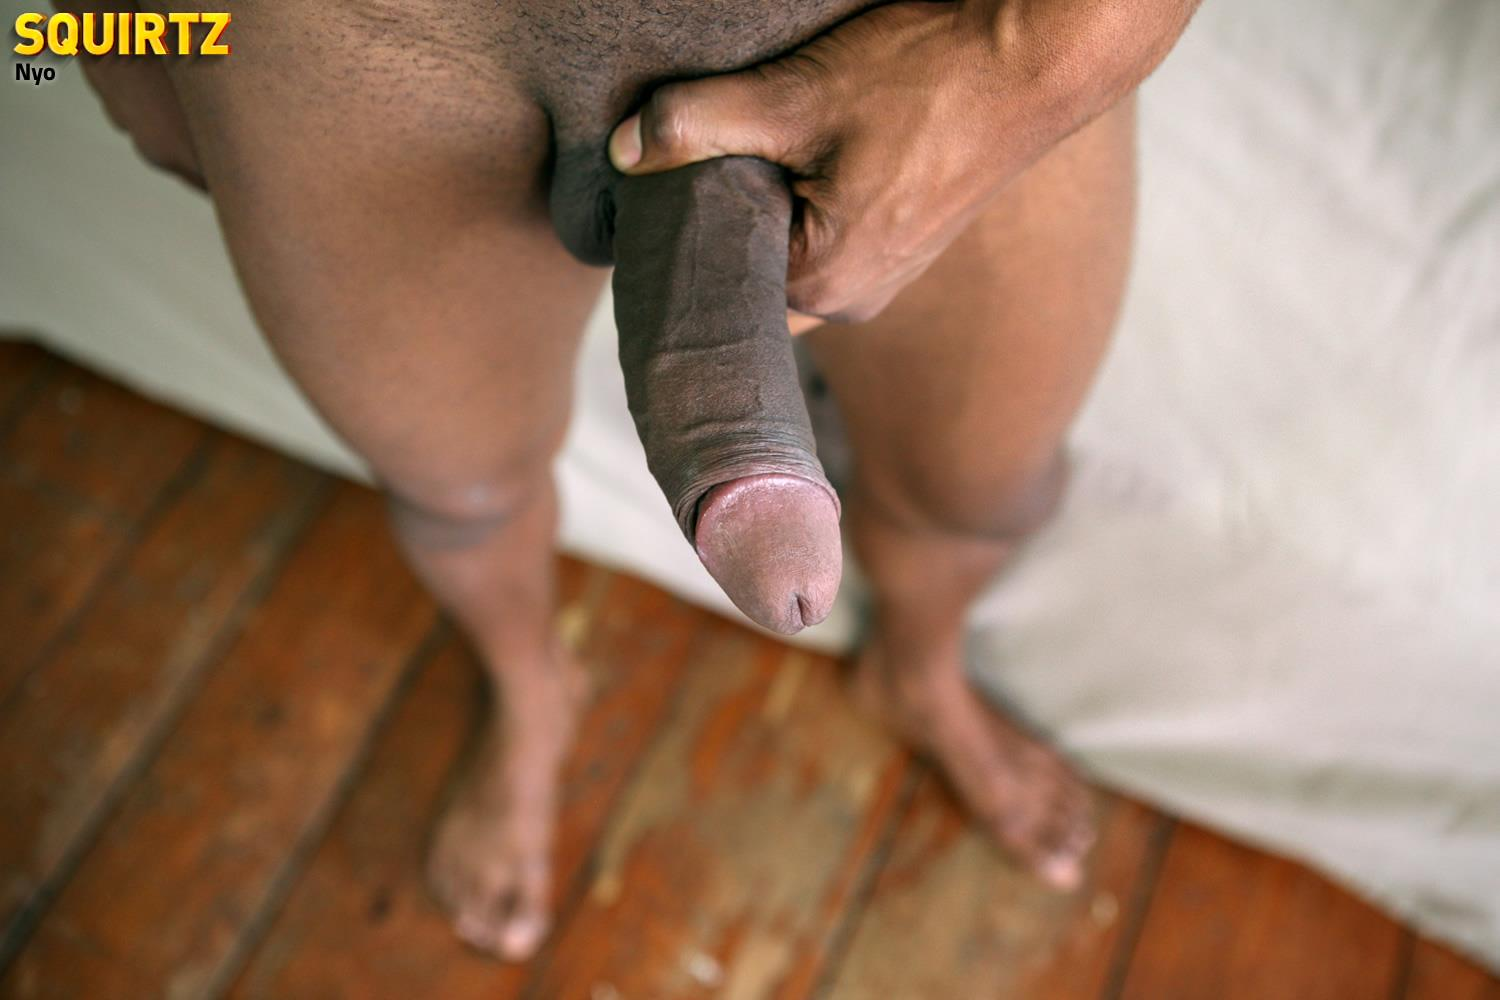 gay cock shooting cum jpg 422x640